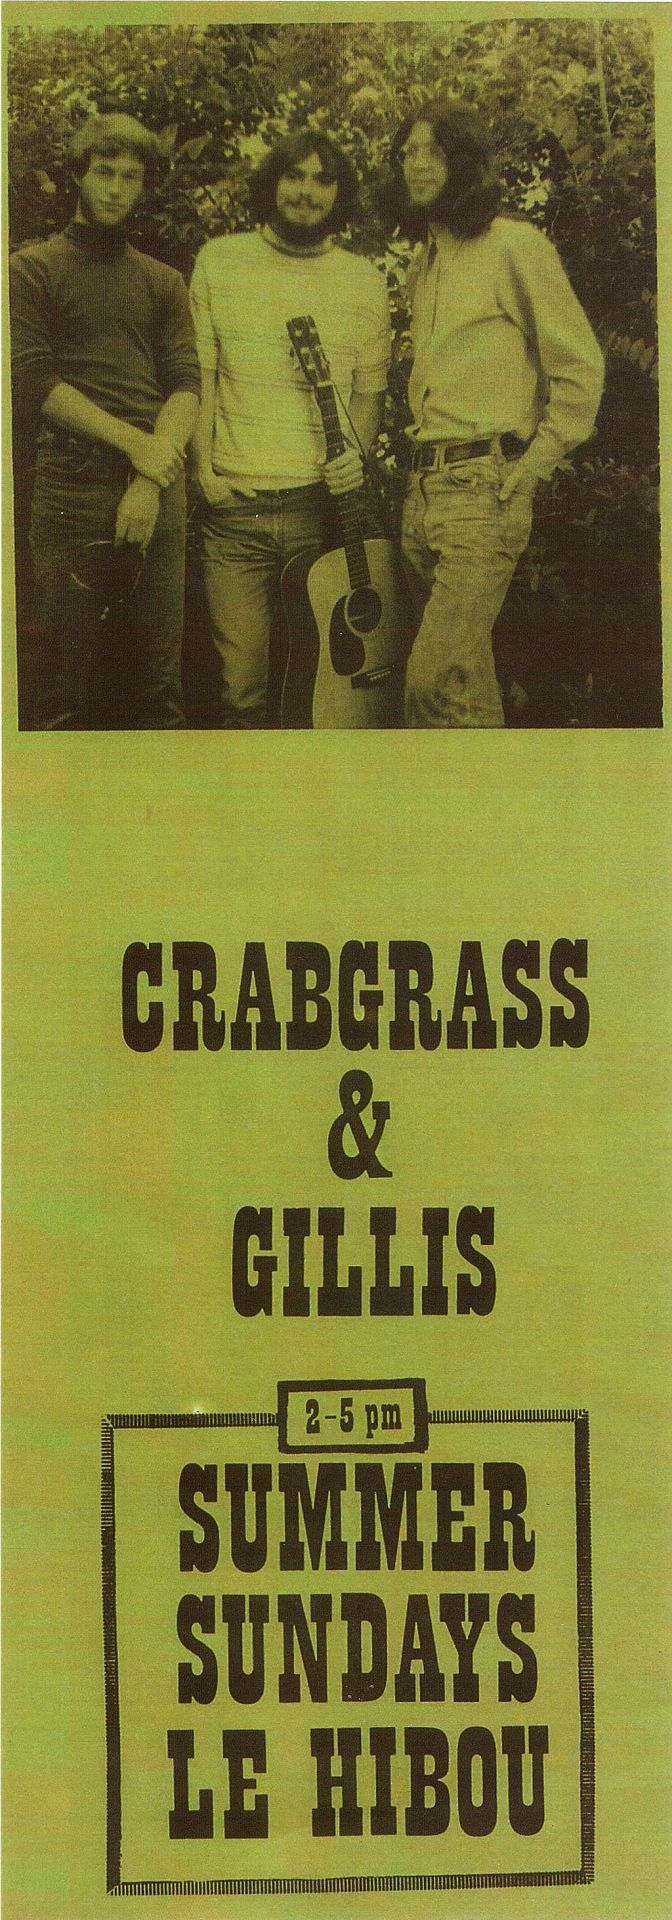 Crabgrass and Gillis